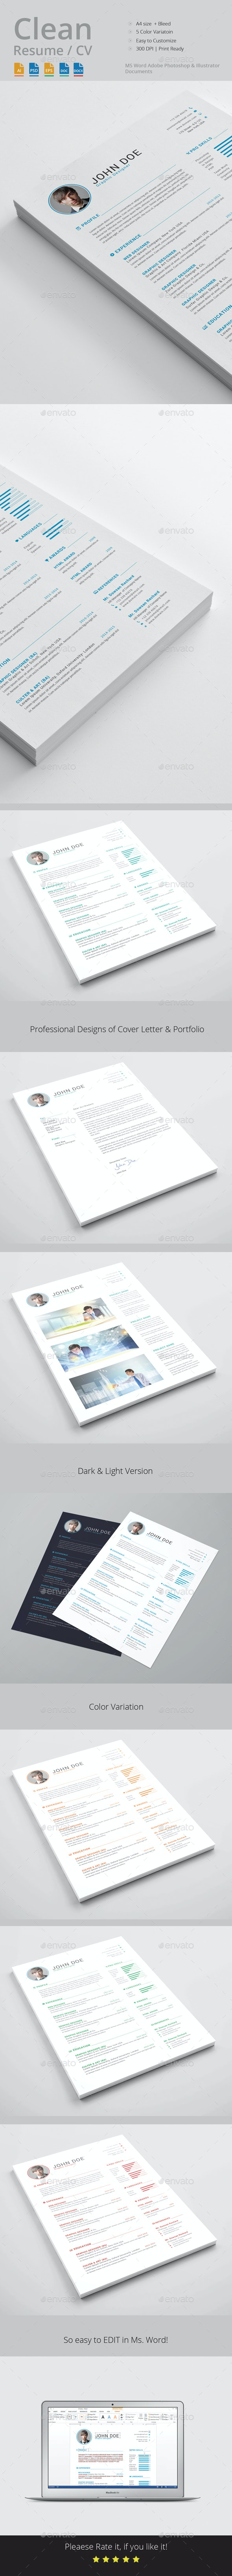 Clean Resume / CV Template - Resumes Stationery